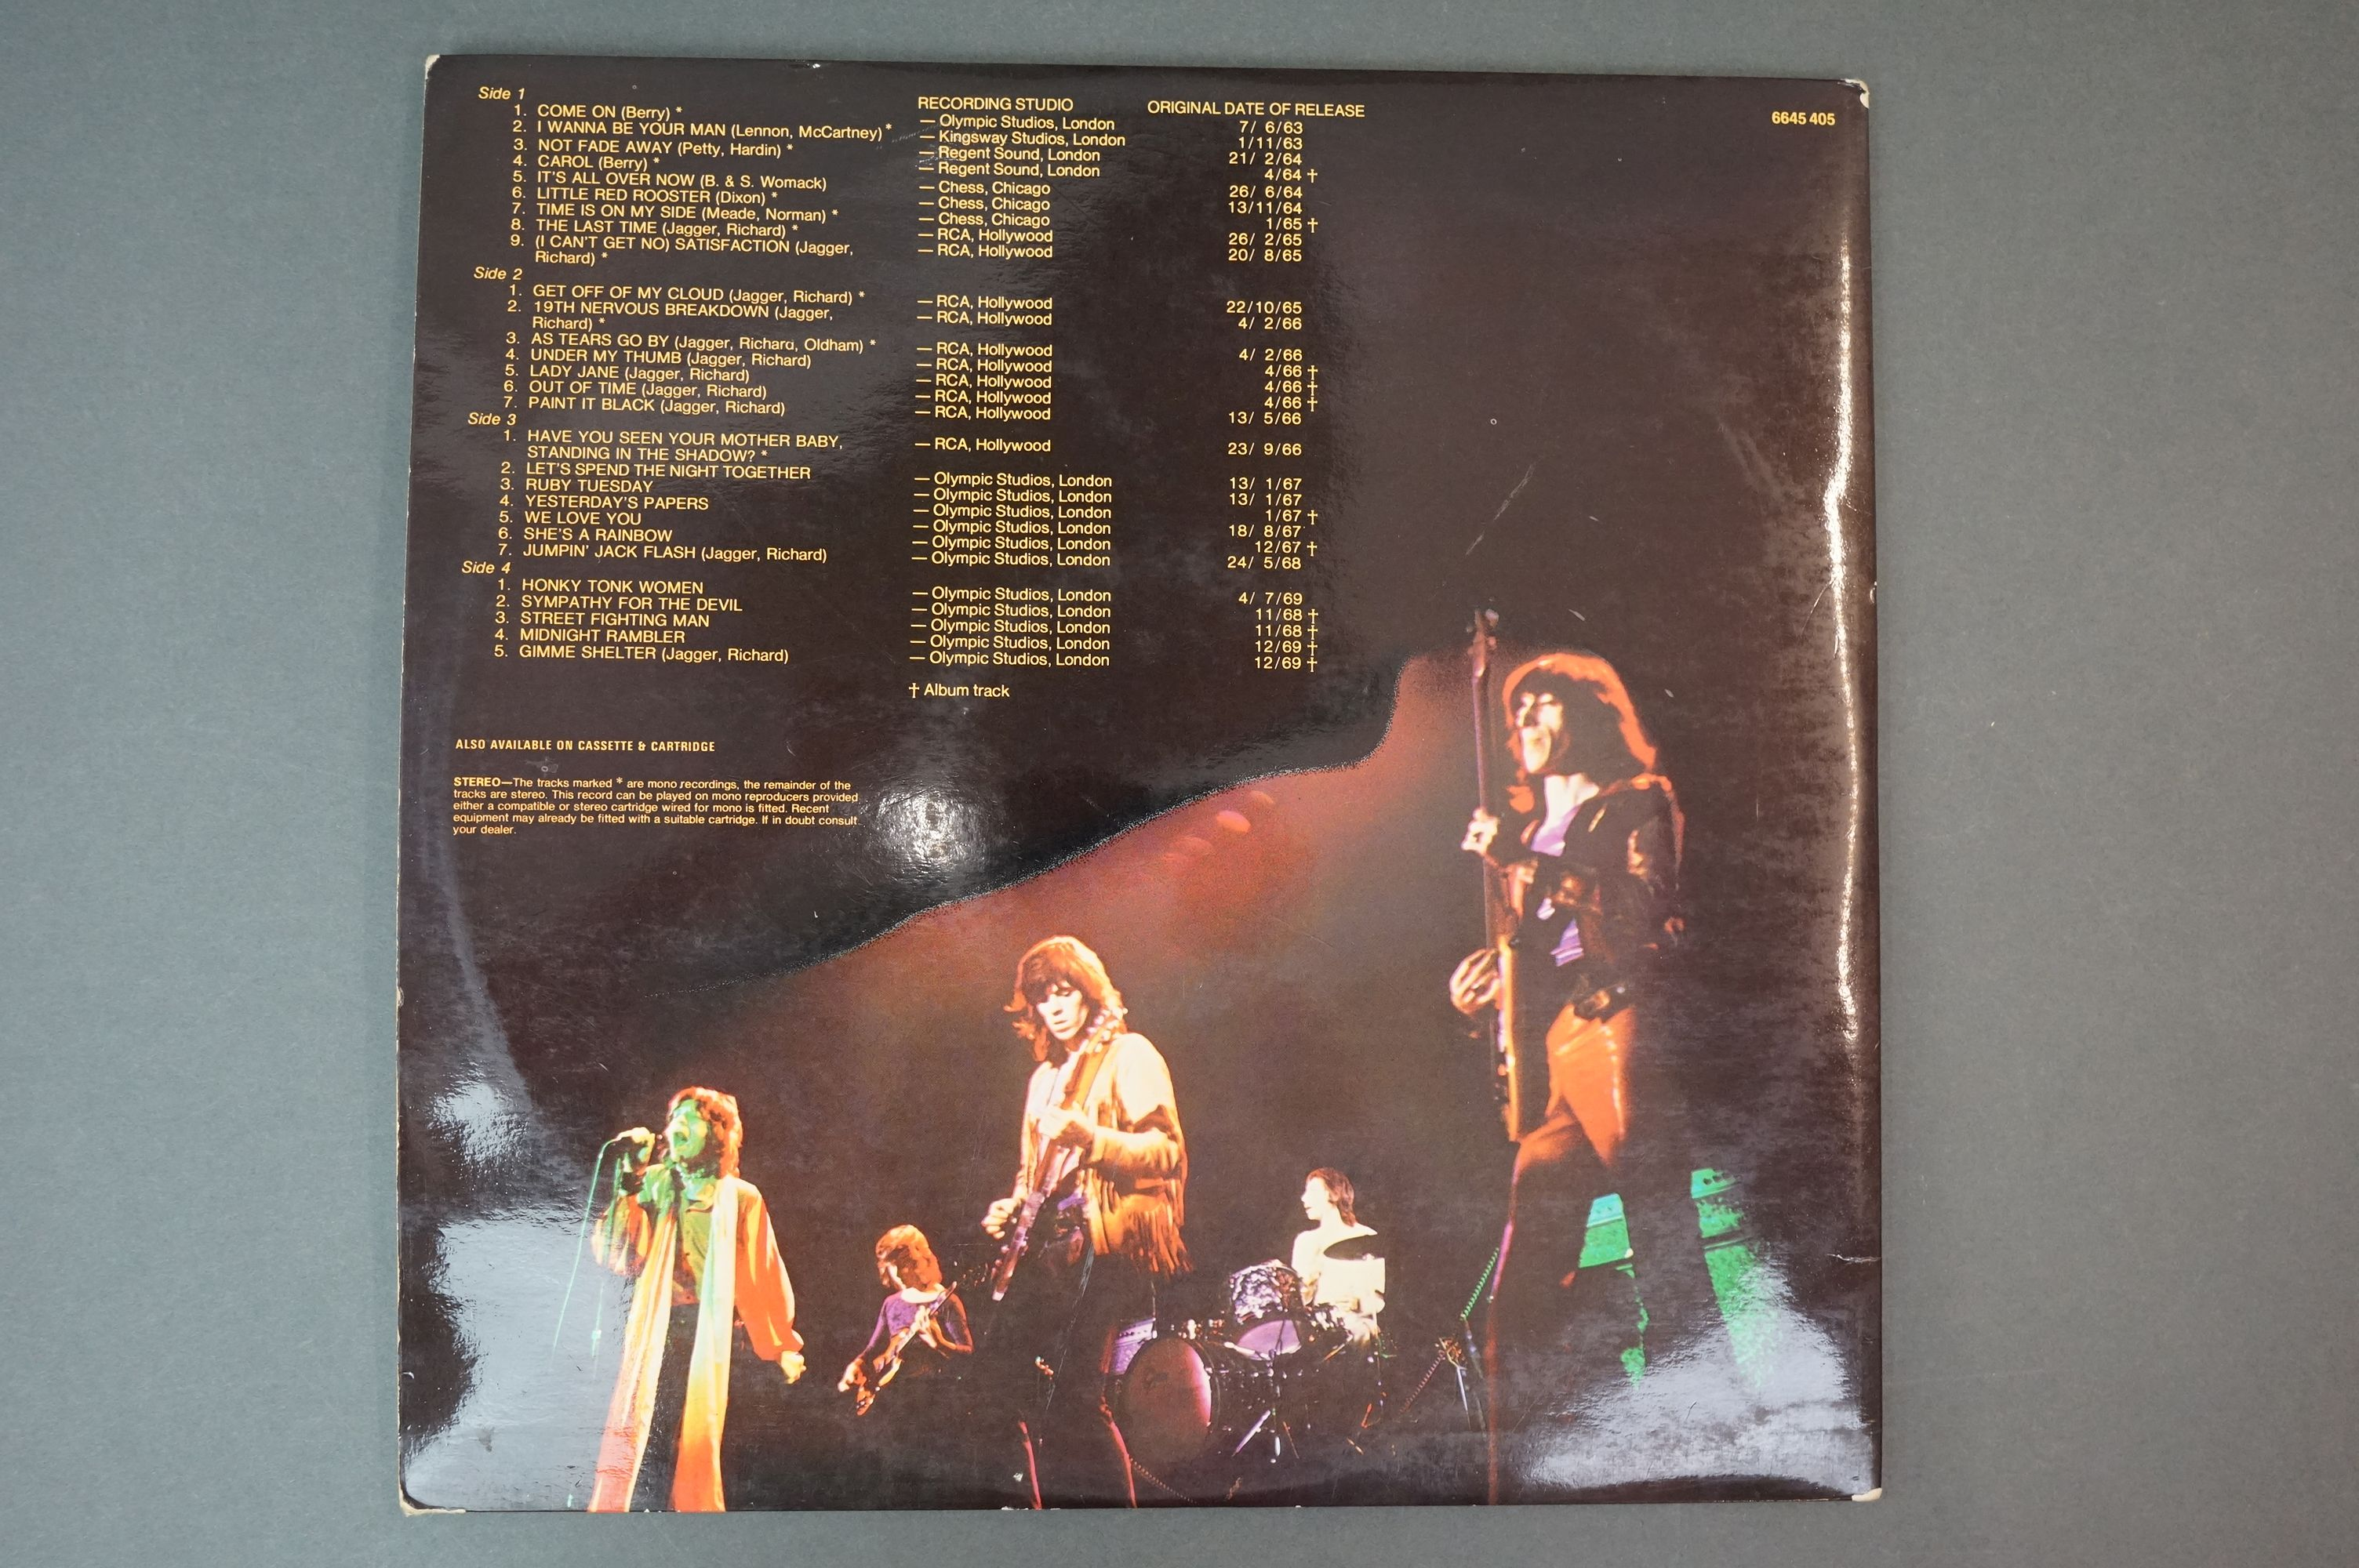 Vinyl - Rolling Stones 3 LP's to include Rolled Gold and Self Titled (both Dutch pressings), and - Image 5 of 10